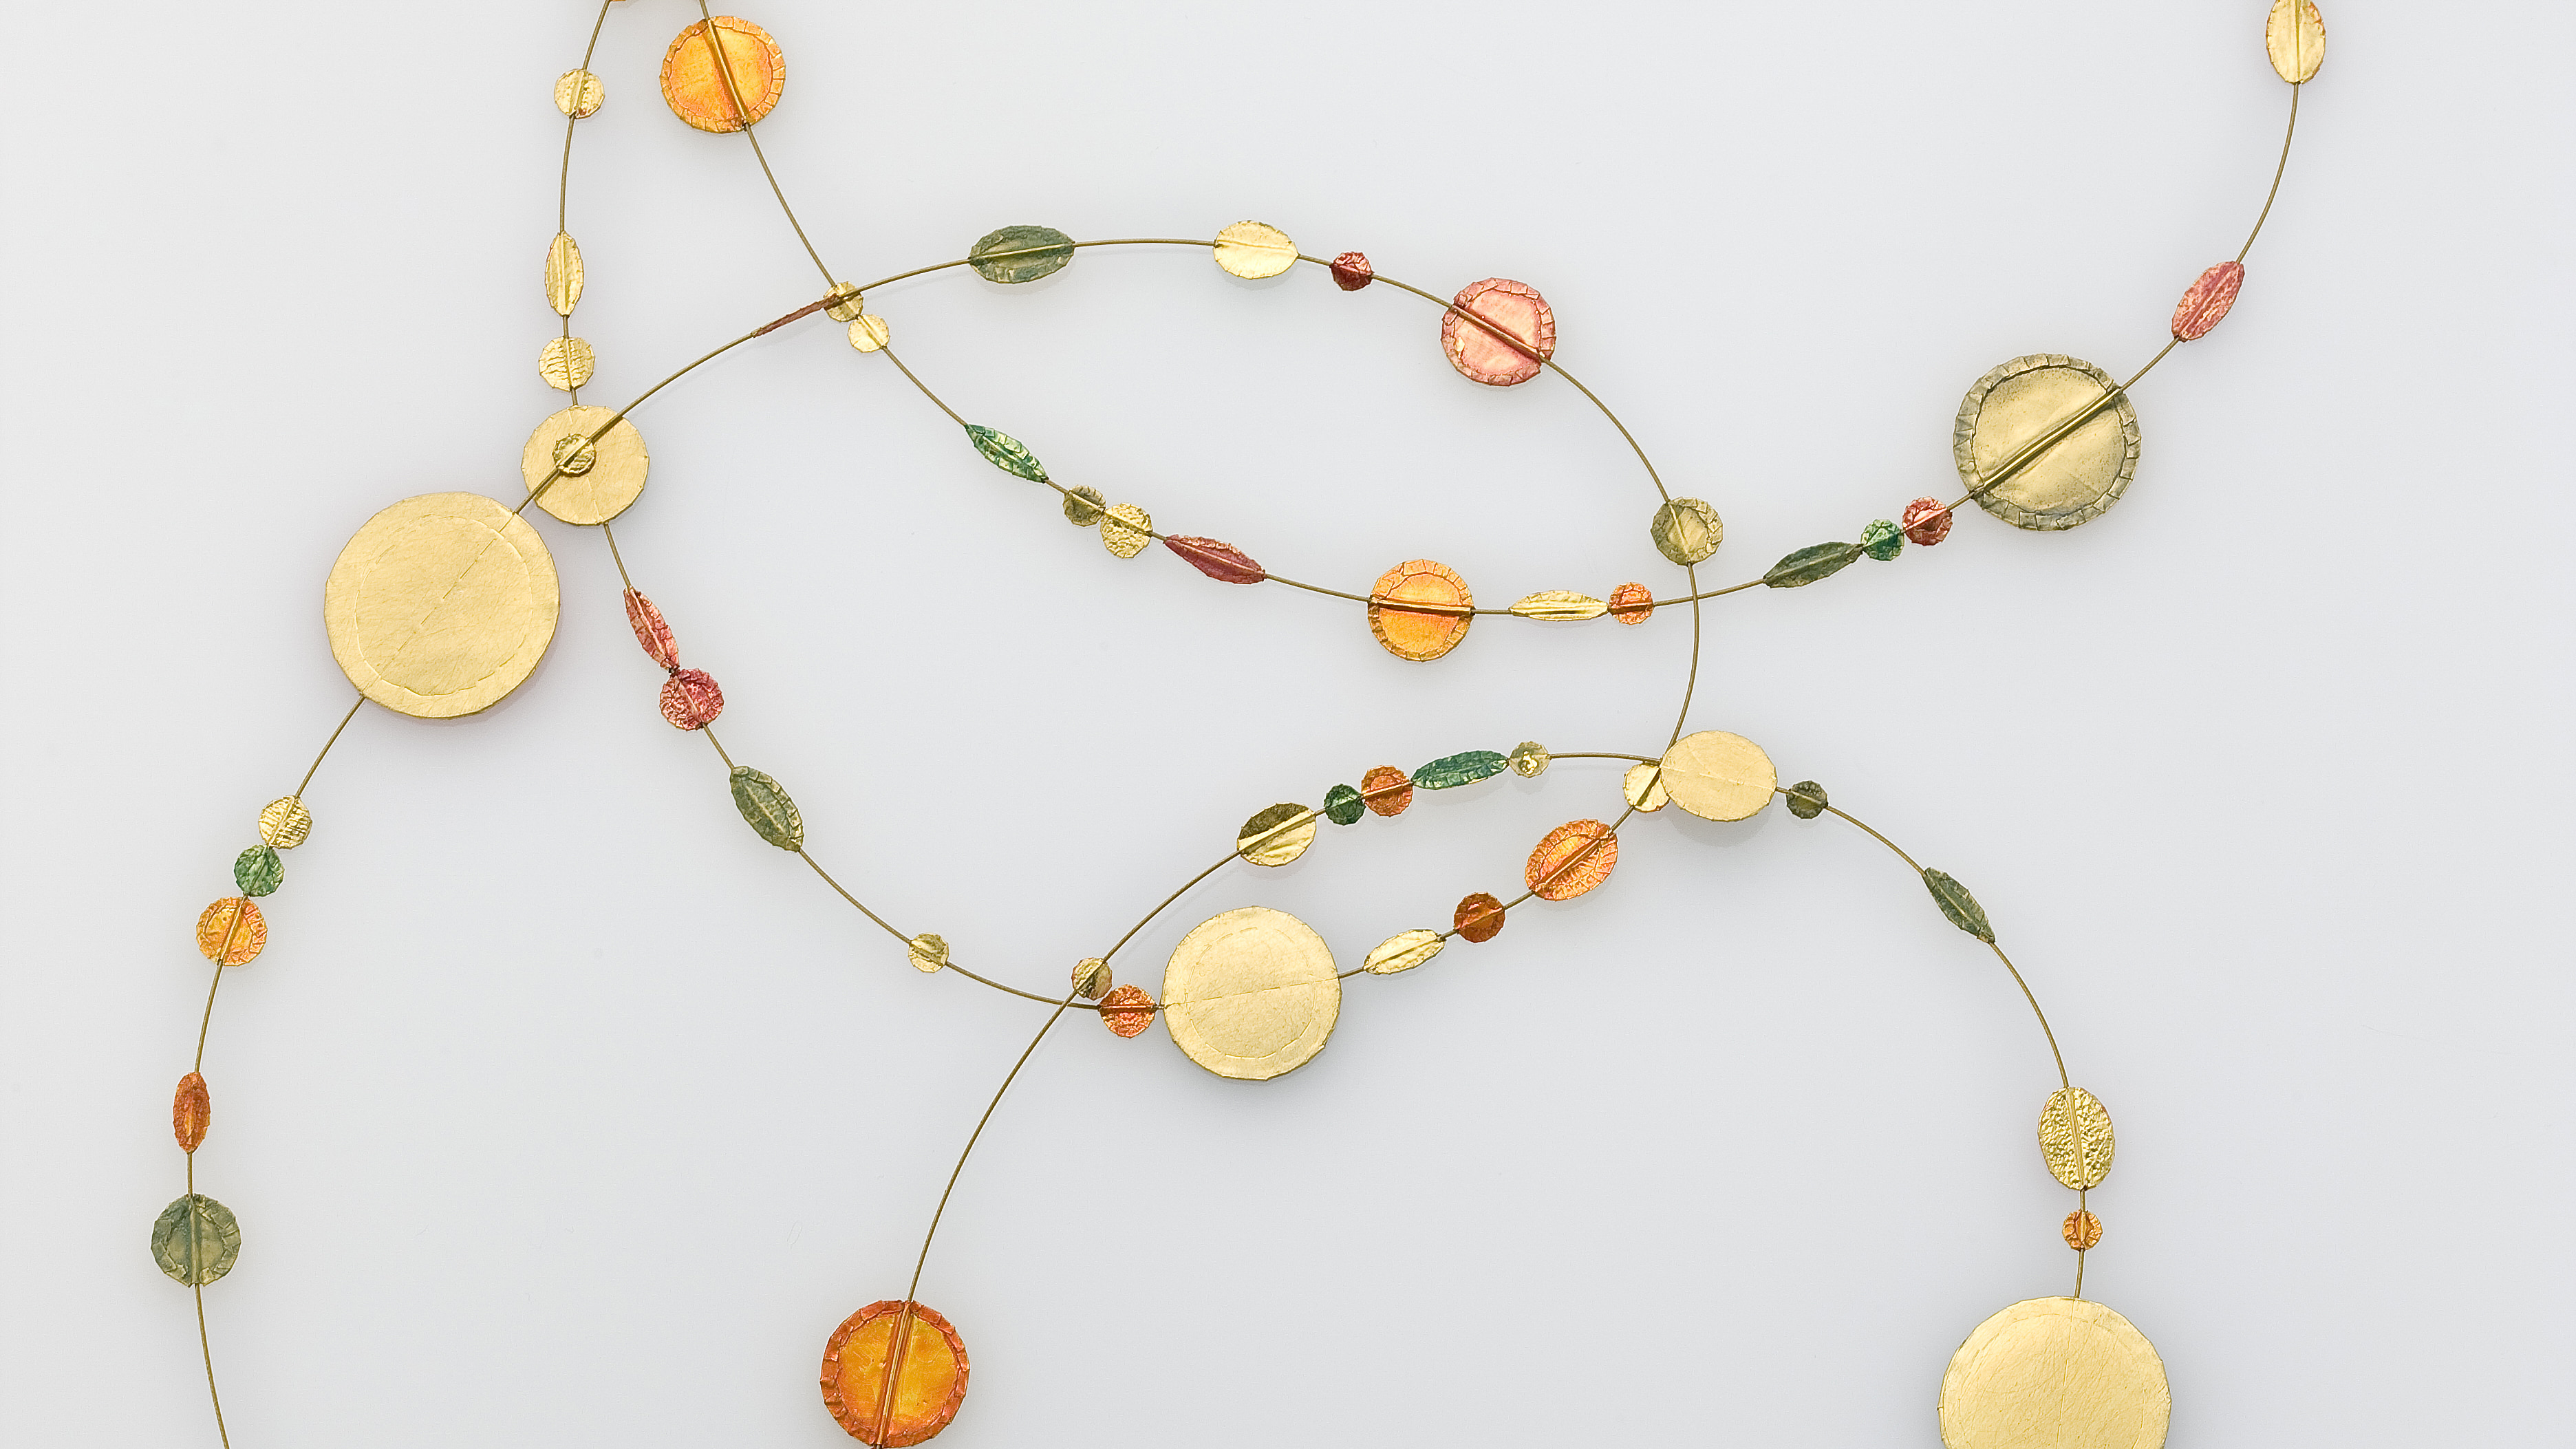 미다스의 뜰-금장신구전 : Midas's Garden Contemporary Gold Jewelry